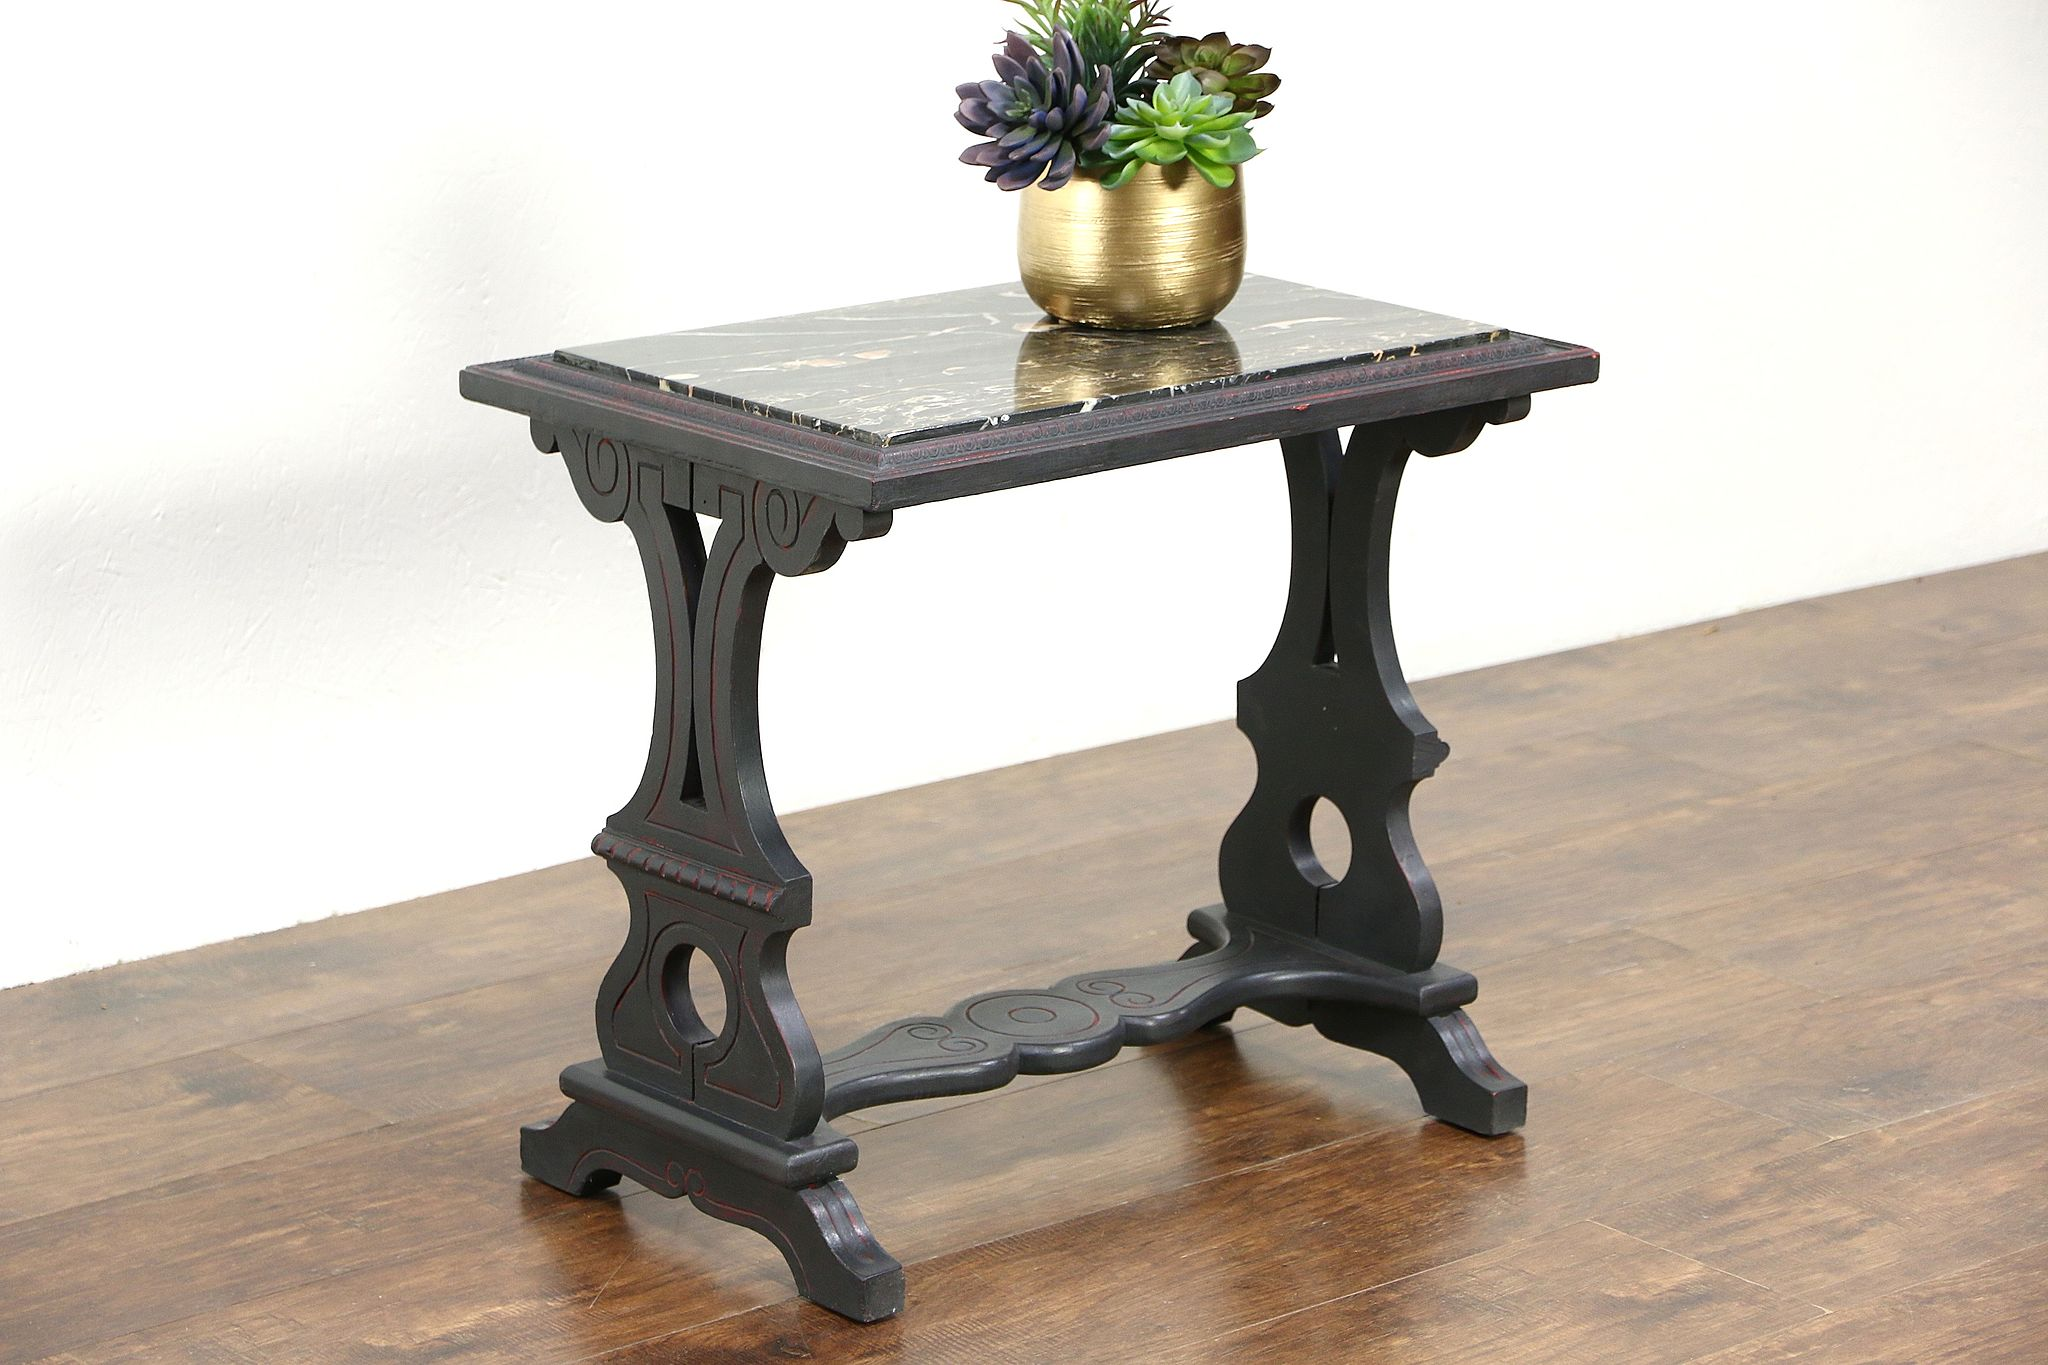 sold - chairside or small painted vintage coffee table, black